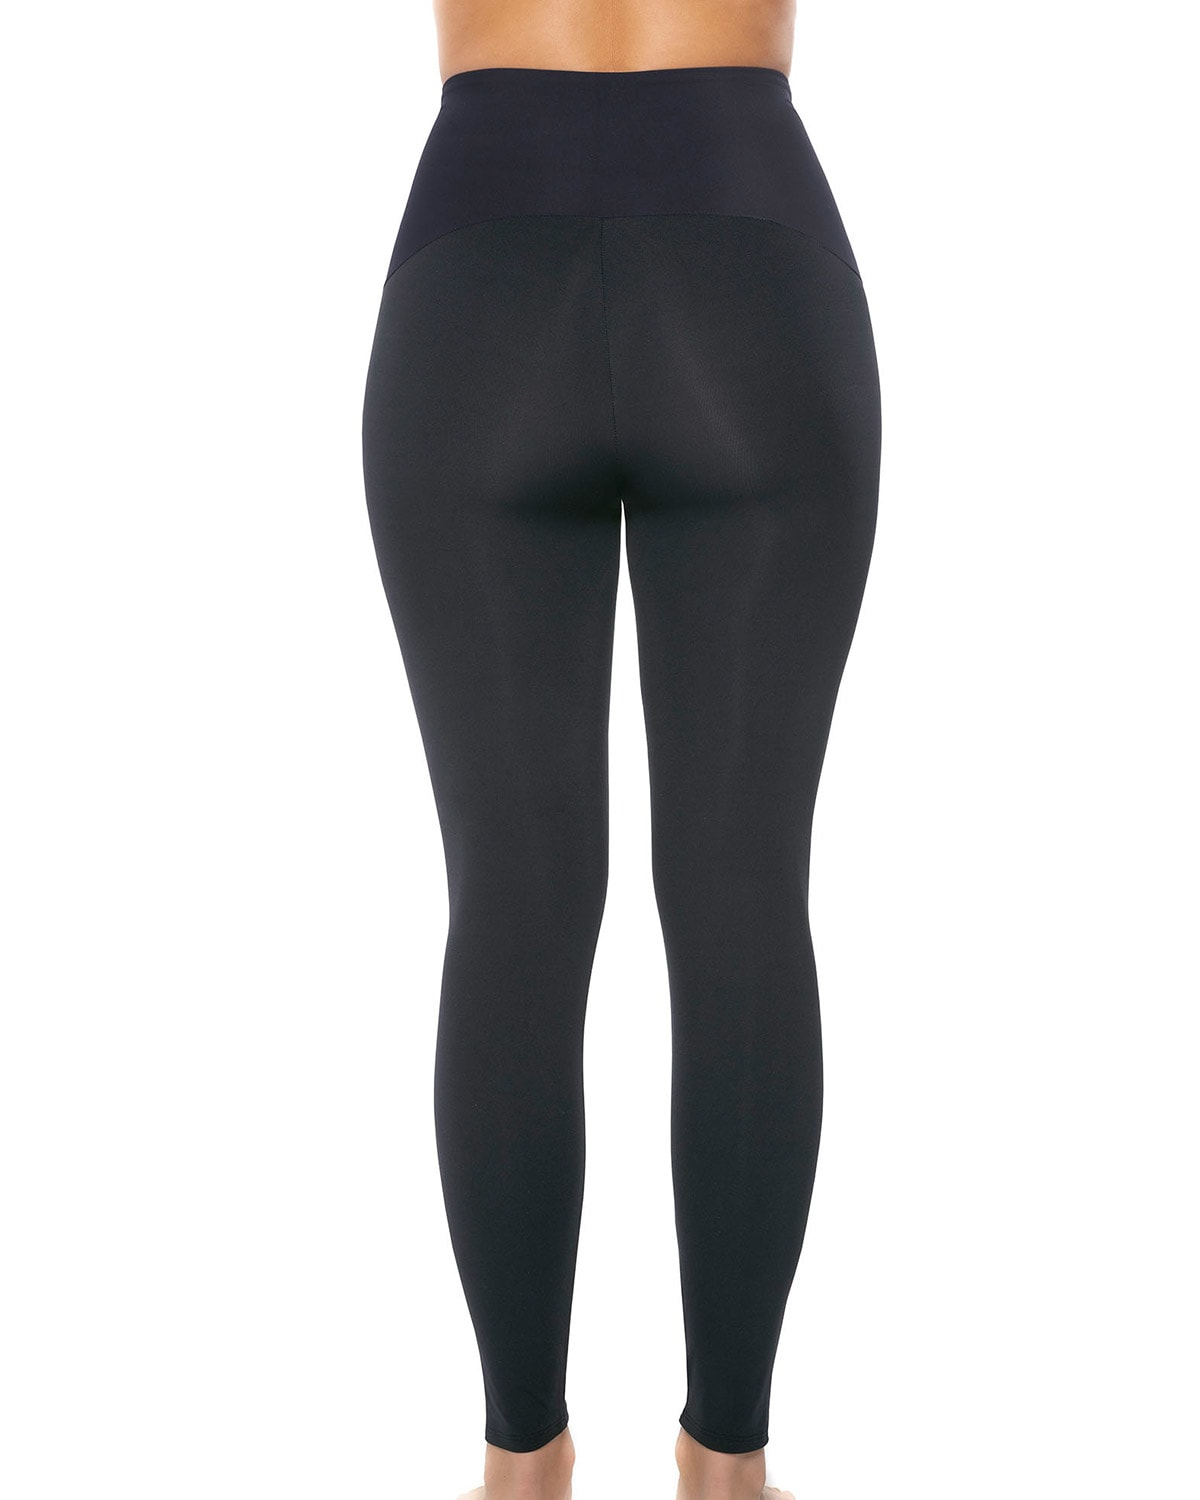 activelife power move moderate compression mid-rise athletic legging--MainImage